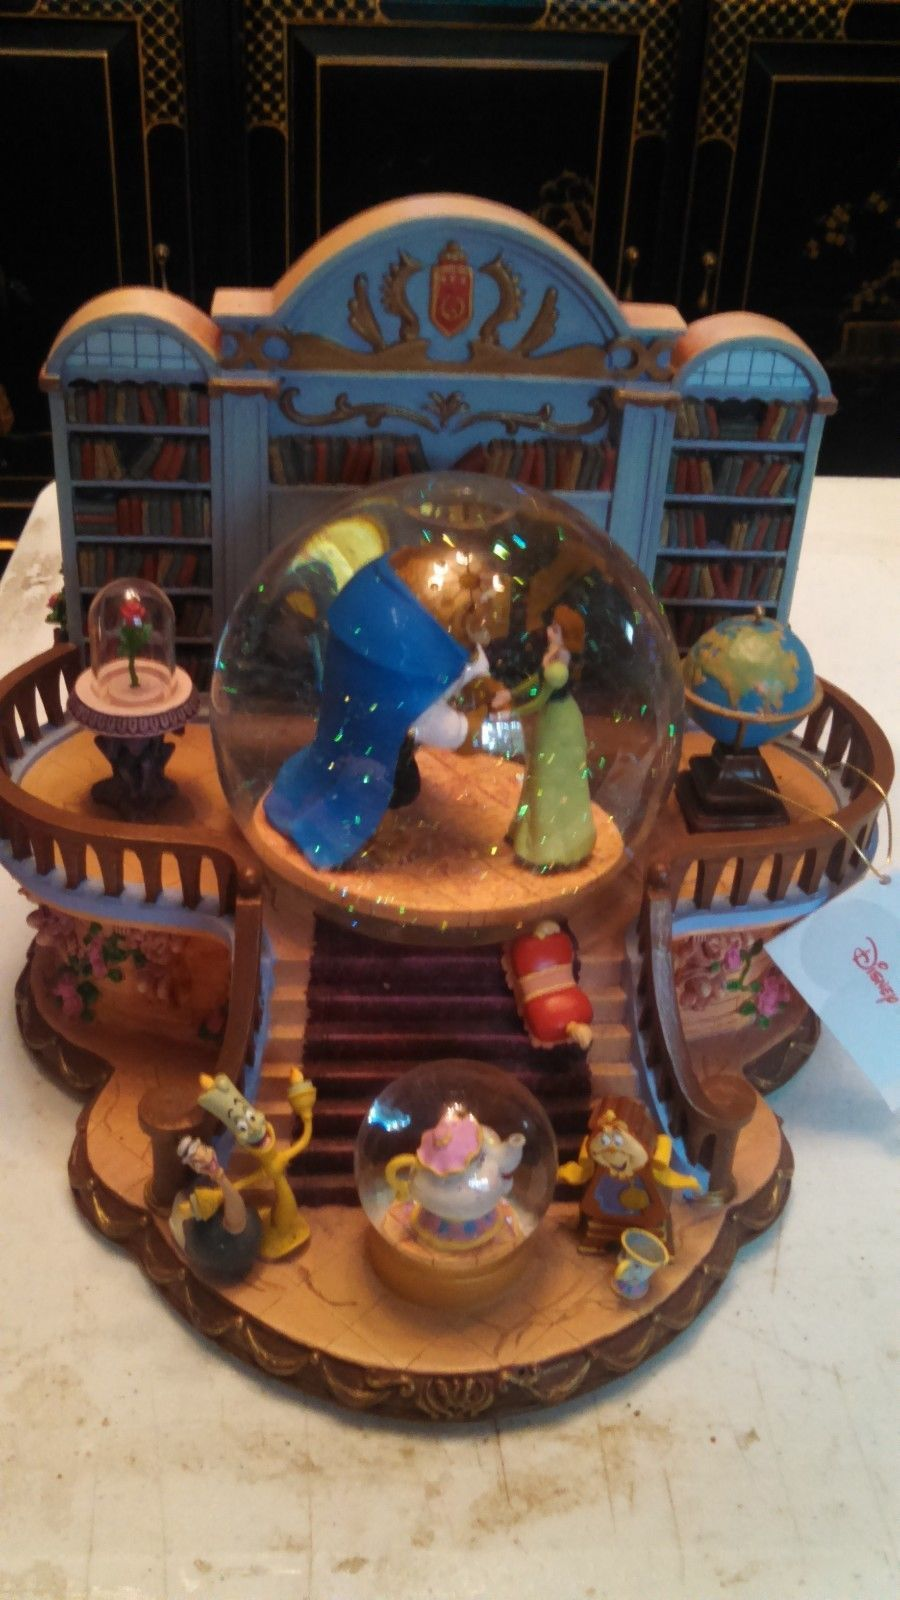 Details about Disney Store Beauty and the Beast Library